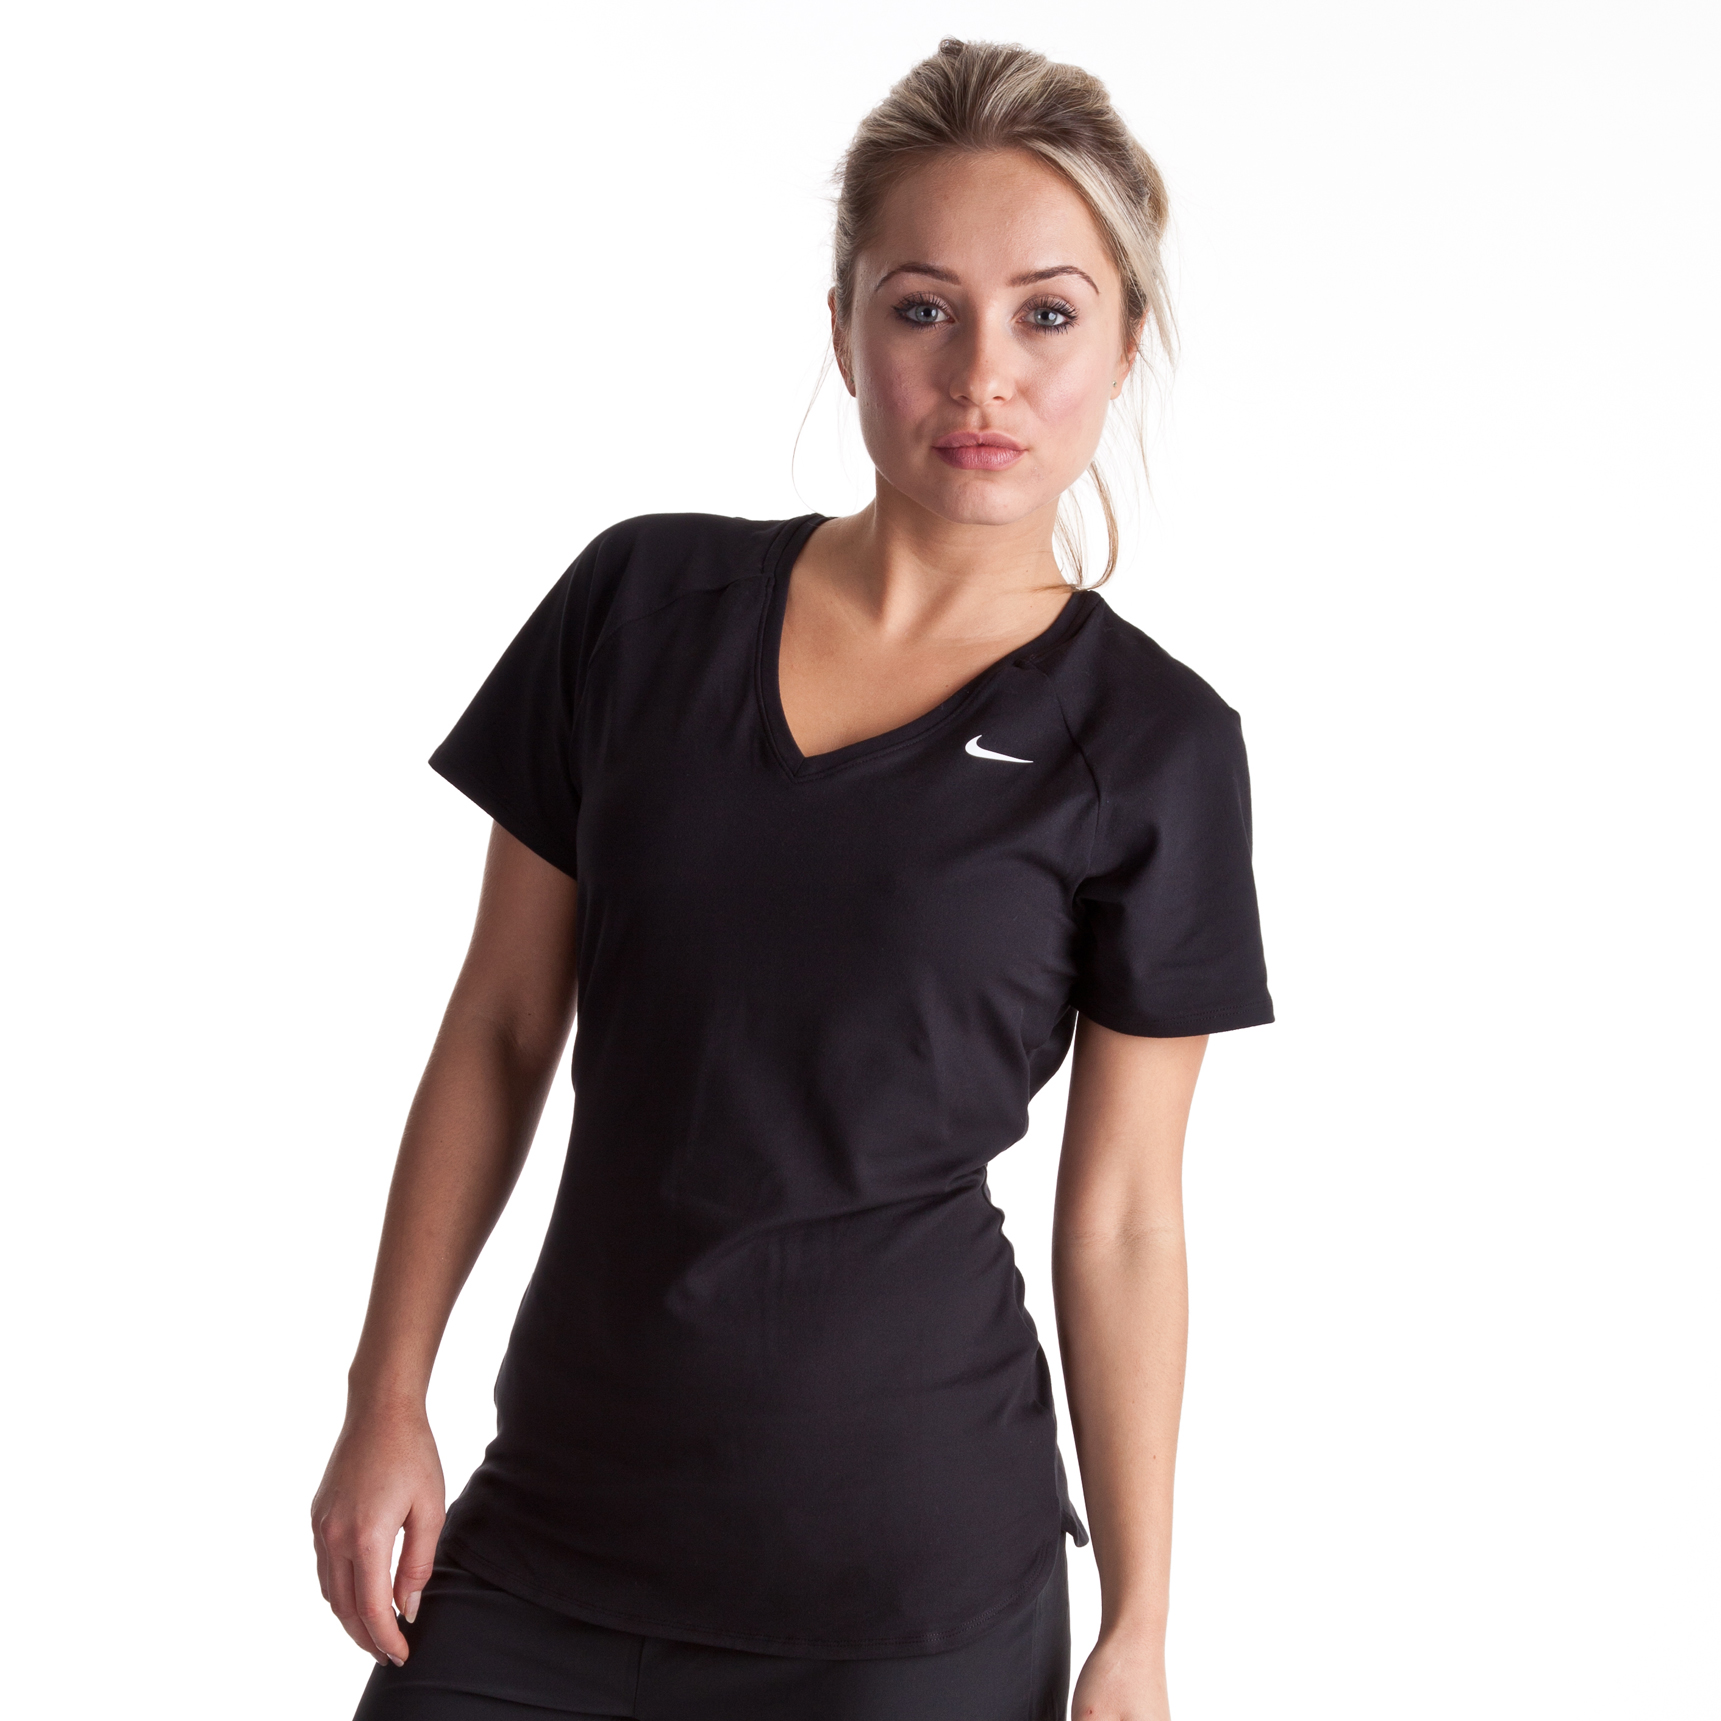 Nike Regular Club Short Sleeve - Black/White - Womens